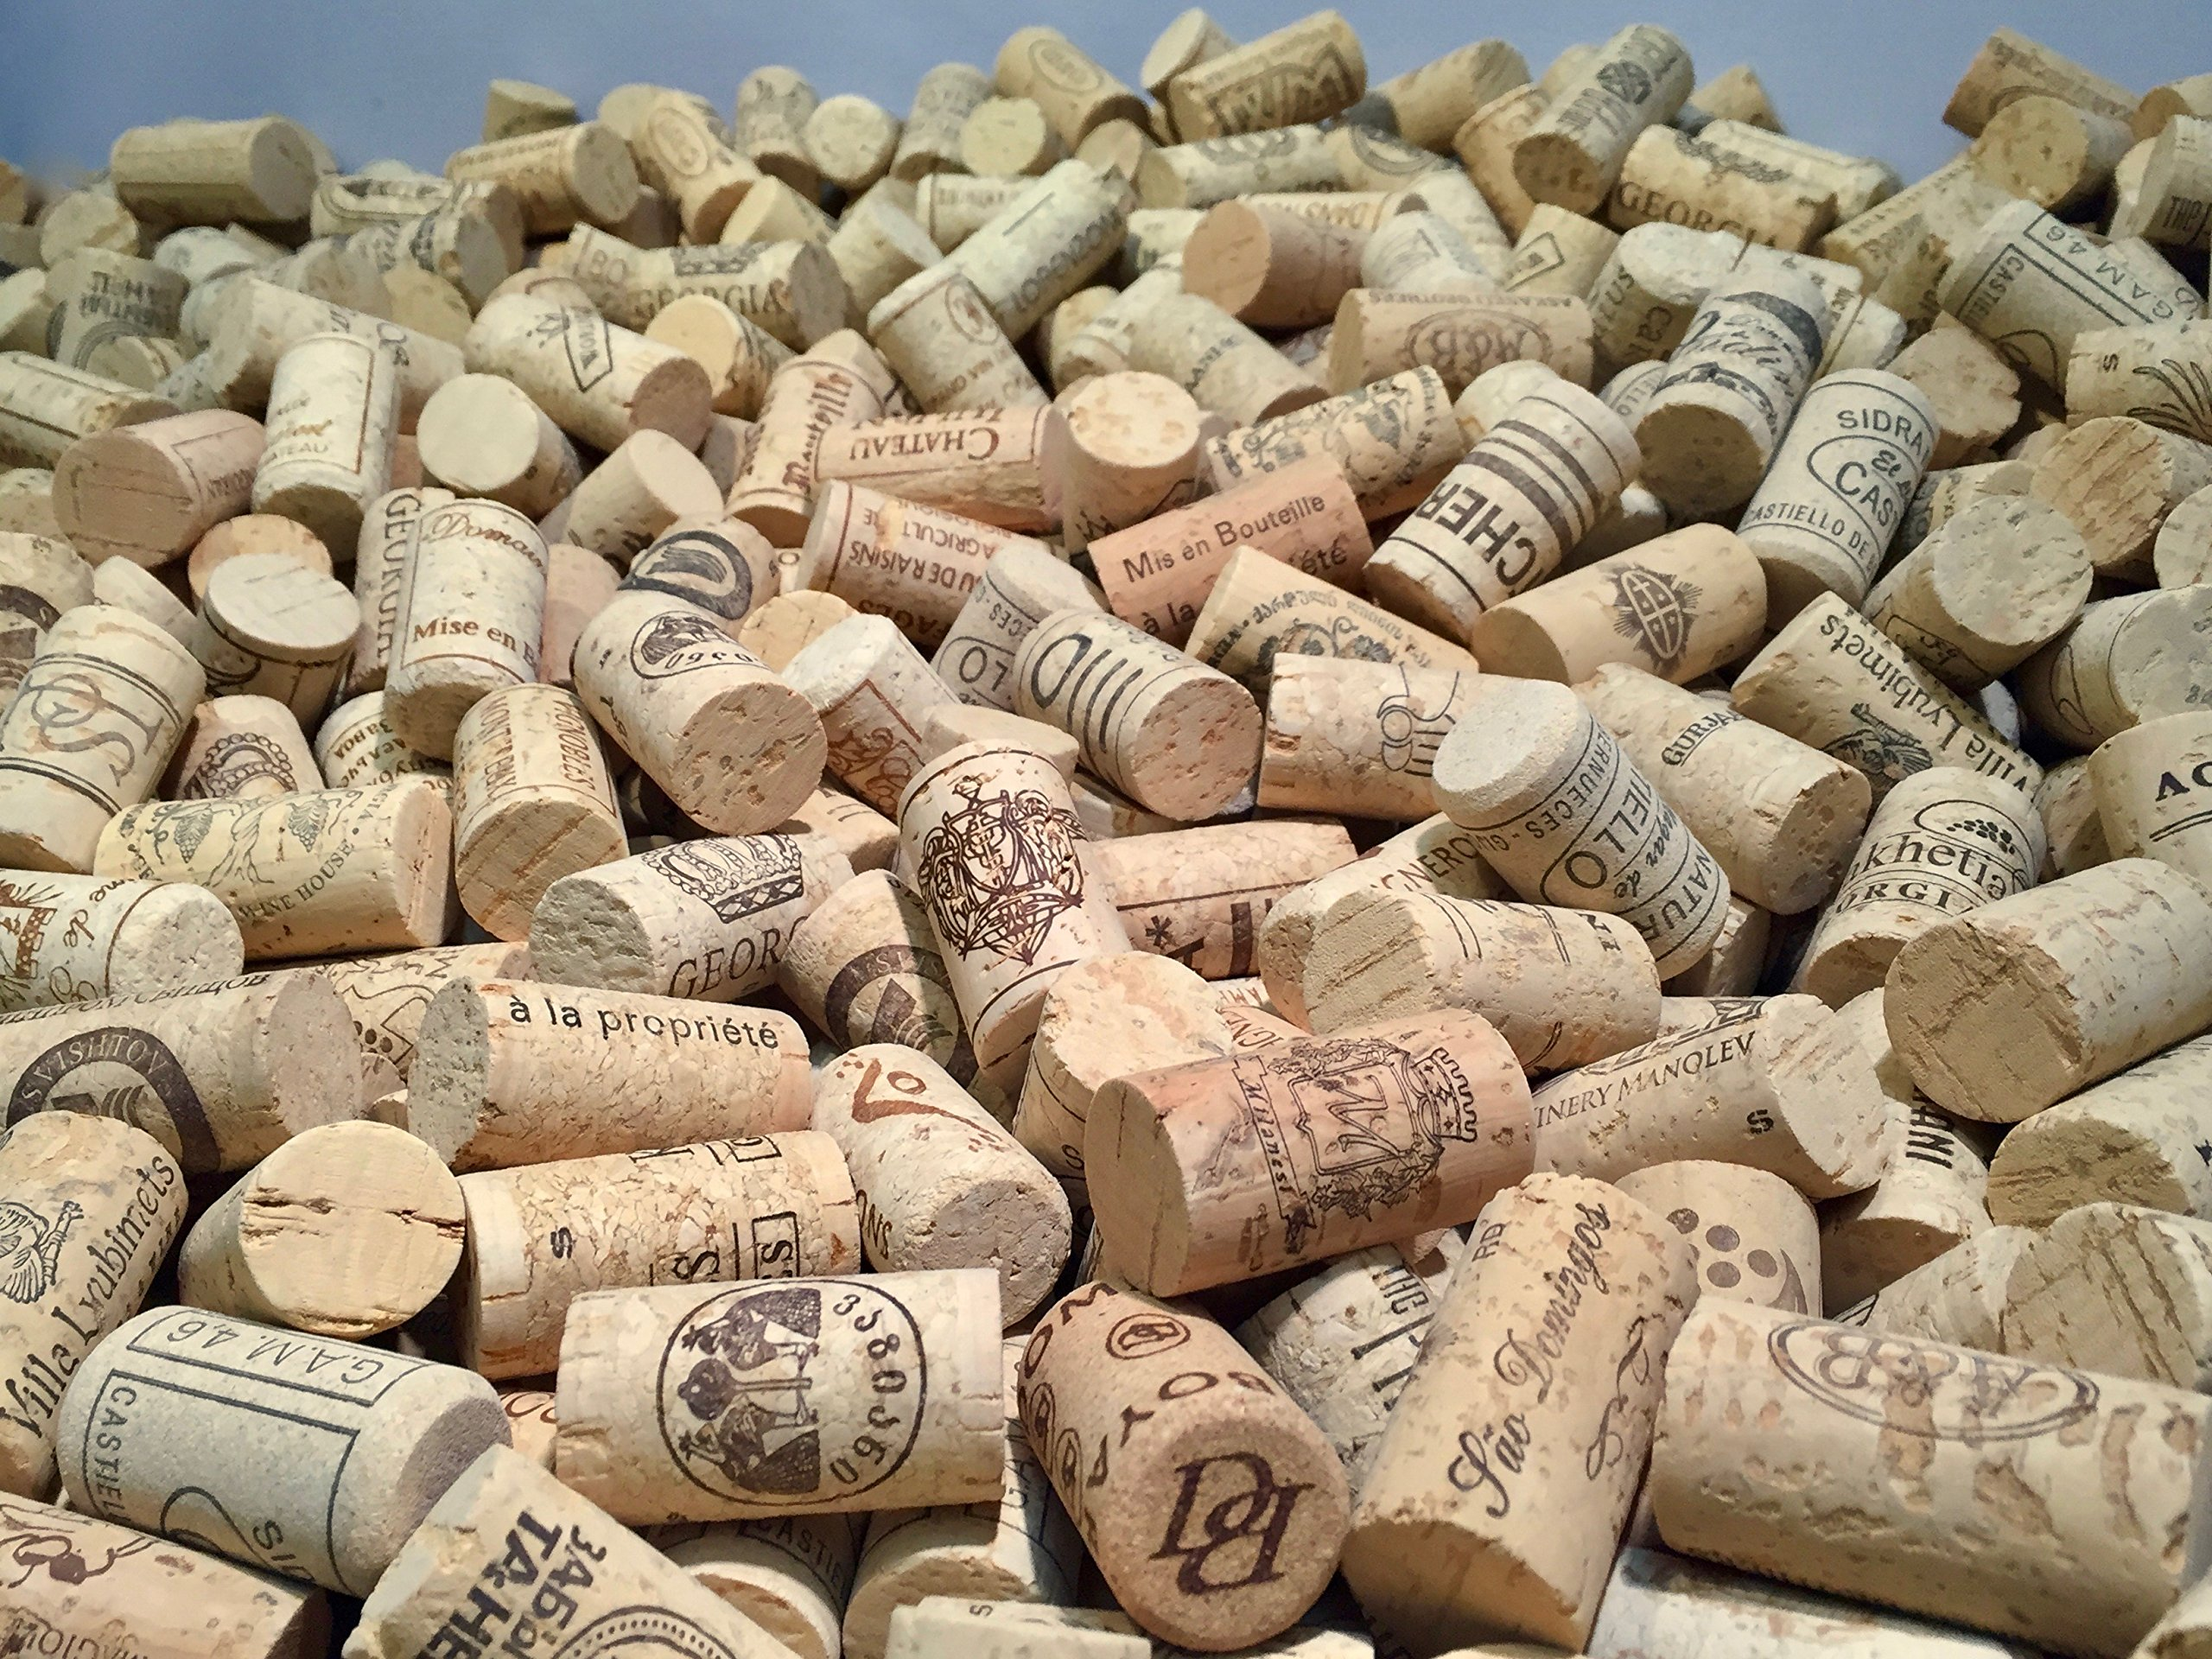 Wine Corks | Brand New, Authentic, All Natural | Printed, Winery-Marked, Craft Grade | Uncirculated, Uniform & Clean | Excellent for Crafting & Decor | Pack of 50/100/150/200 Premium Wine Corks (500) by Corkshire Hathaway (Image #7)